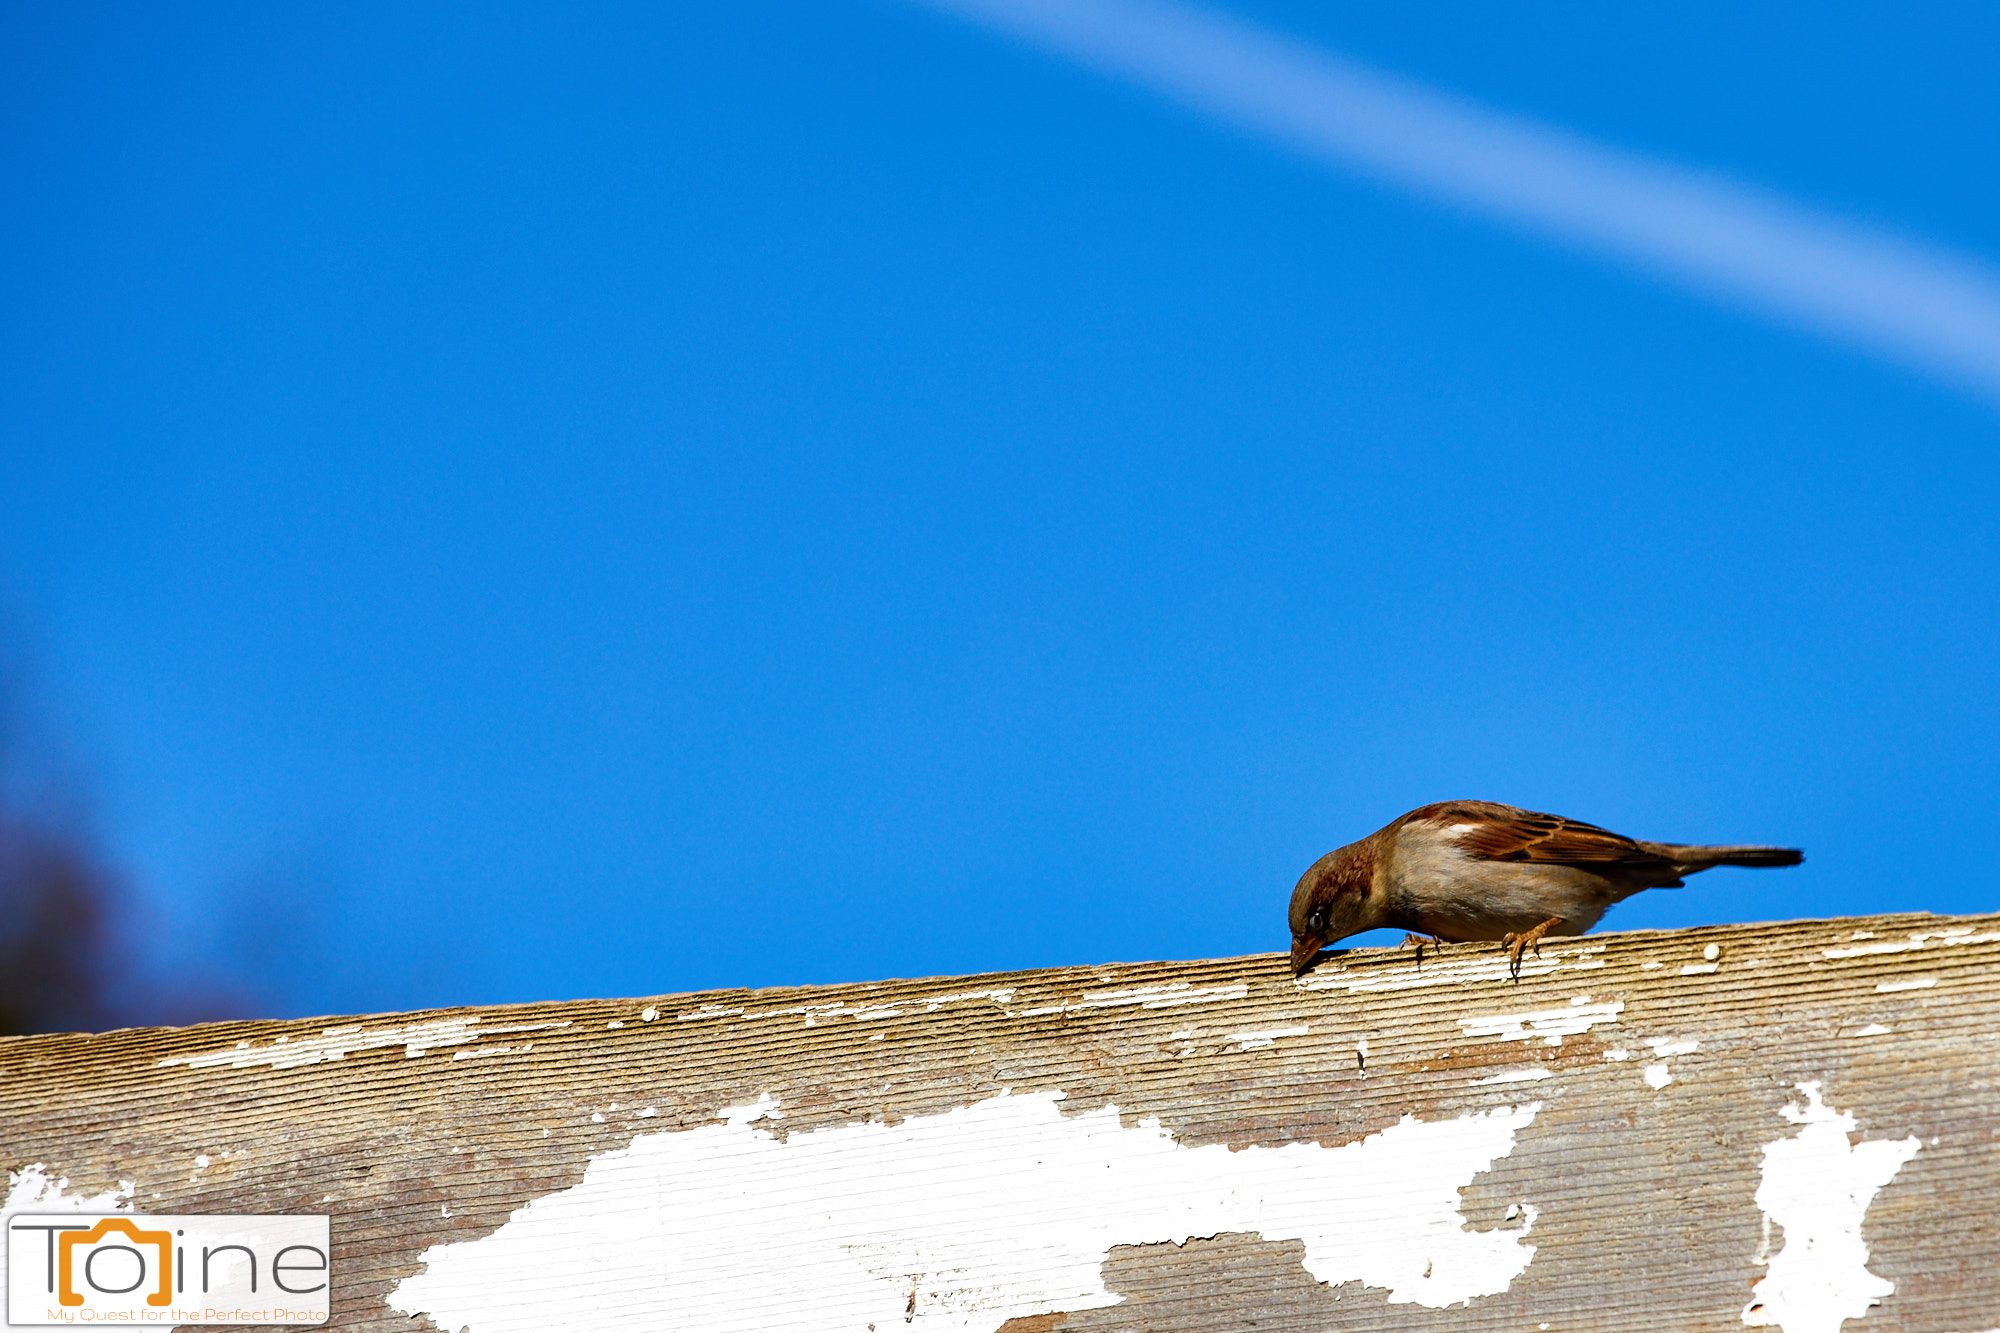 This bird was sitting on top of a structure, but I was able to grab a quick shot!